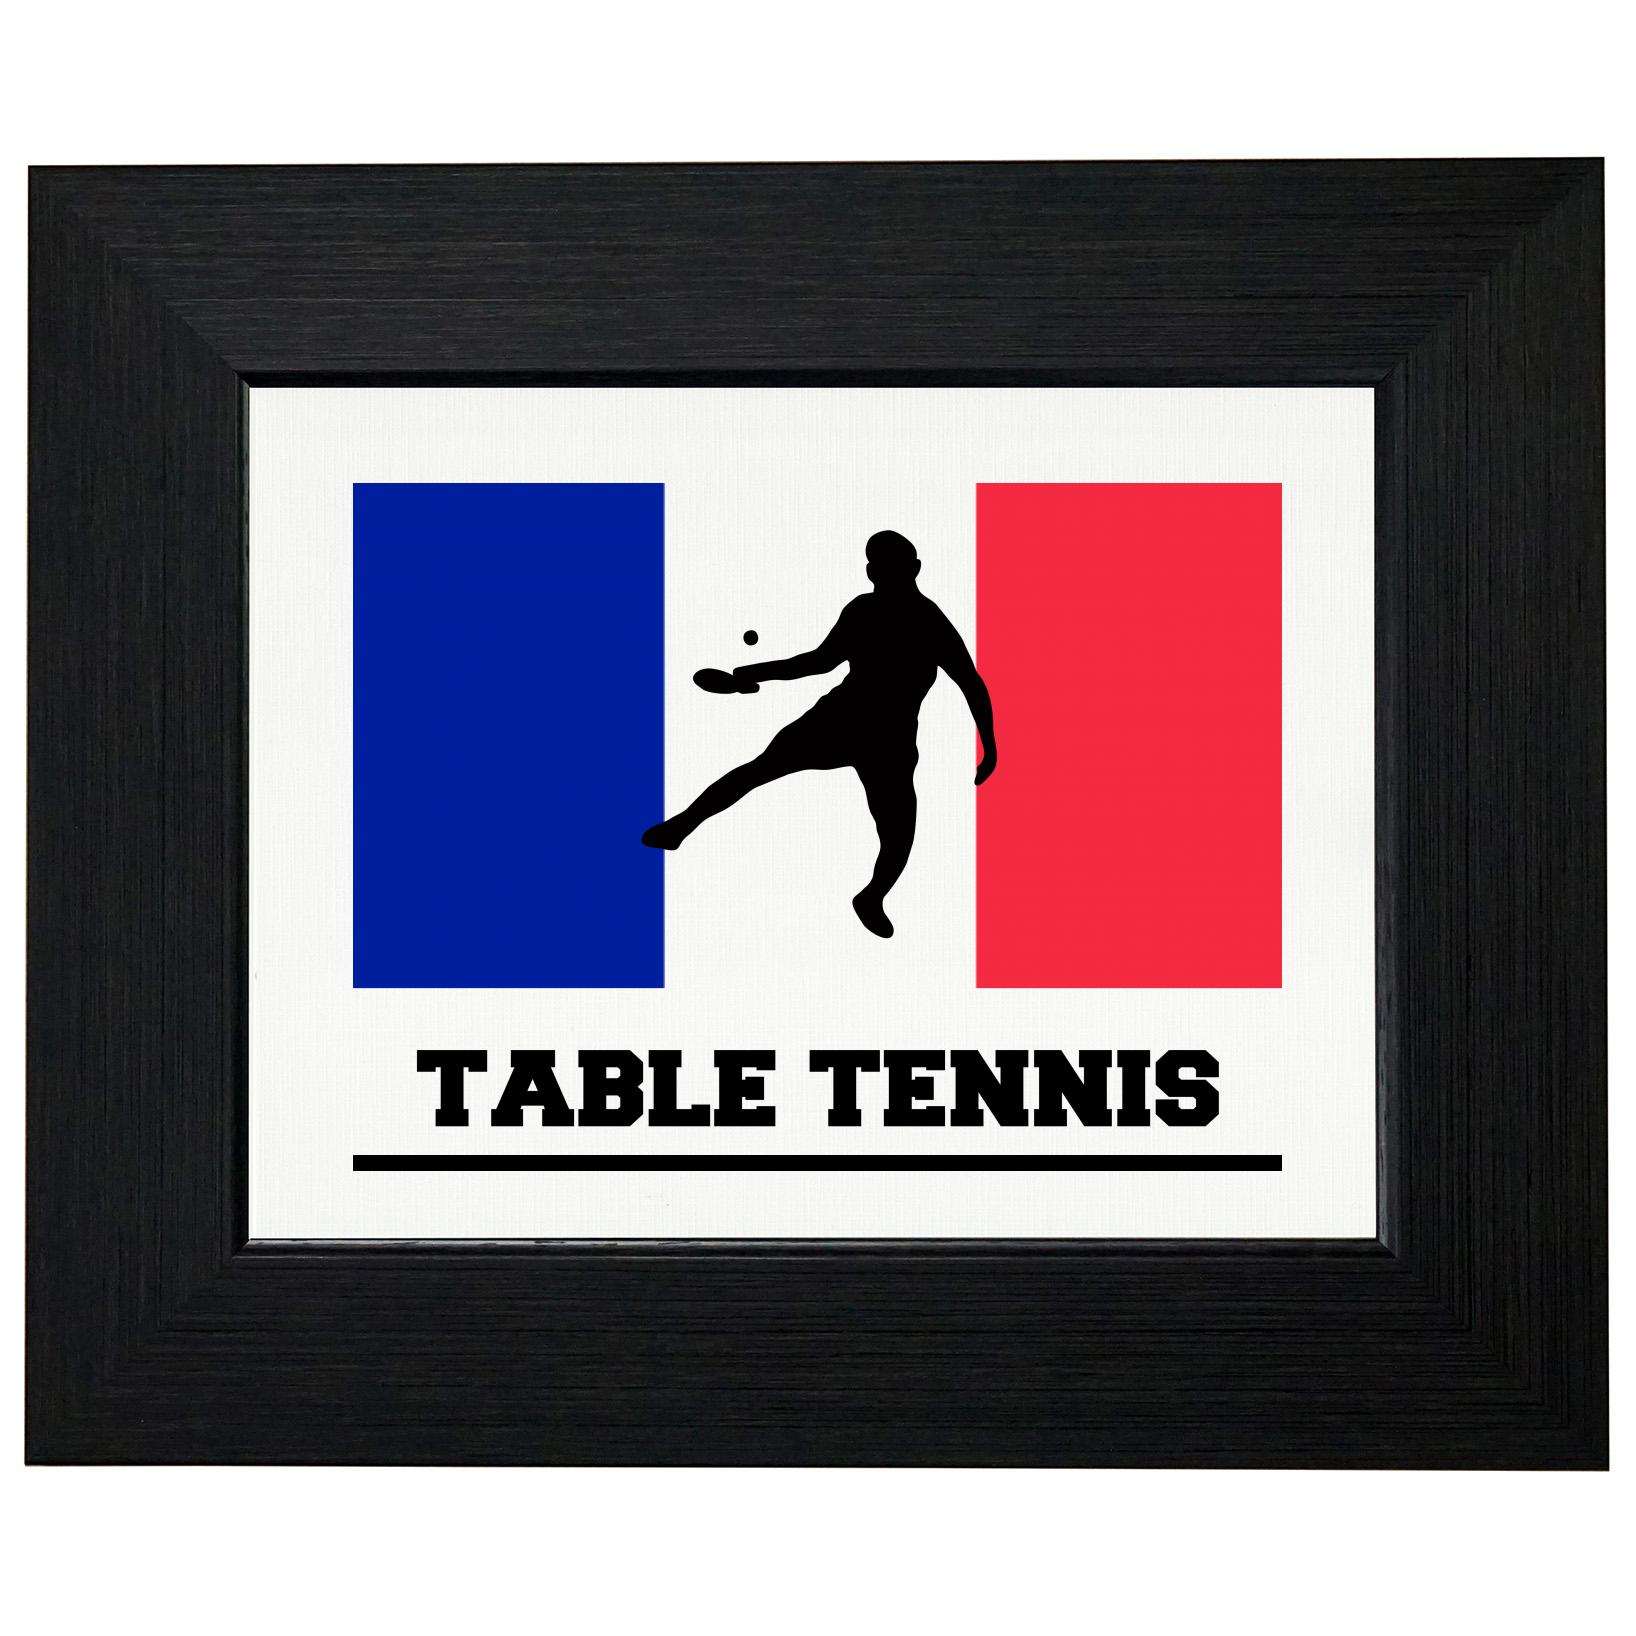 France Olympic Ping Pong Flag Silhouette Framed Print Poster Wall or Desk Mount Options by Royal Prints